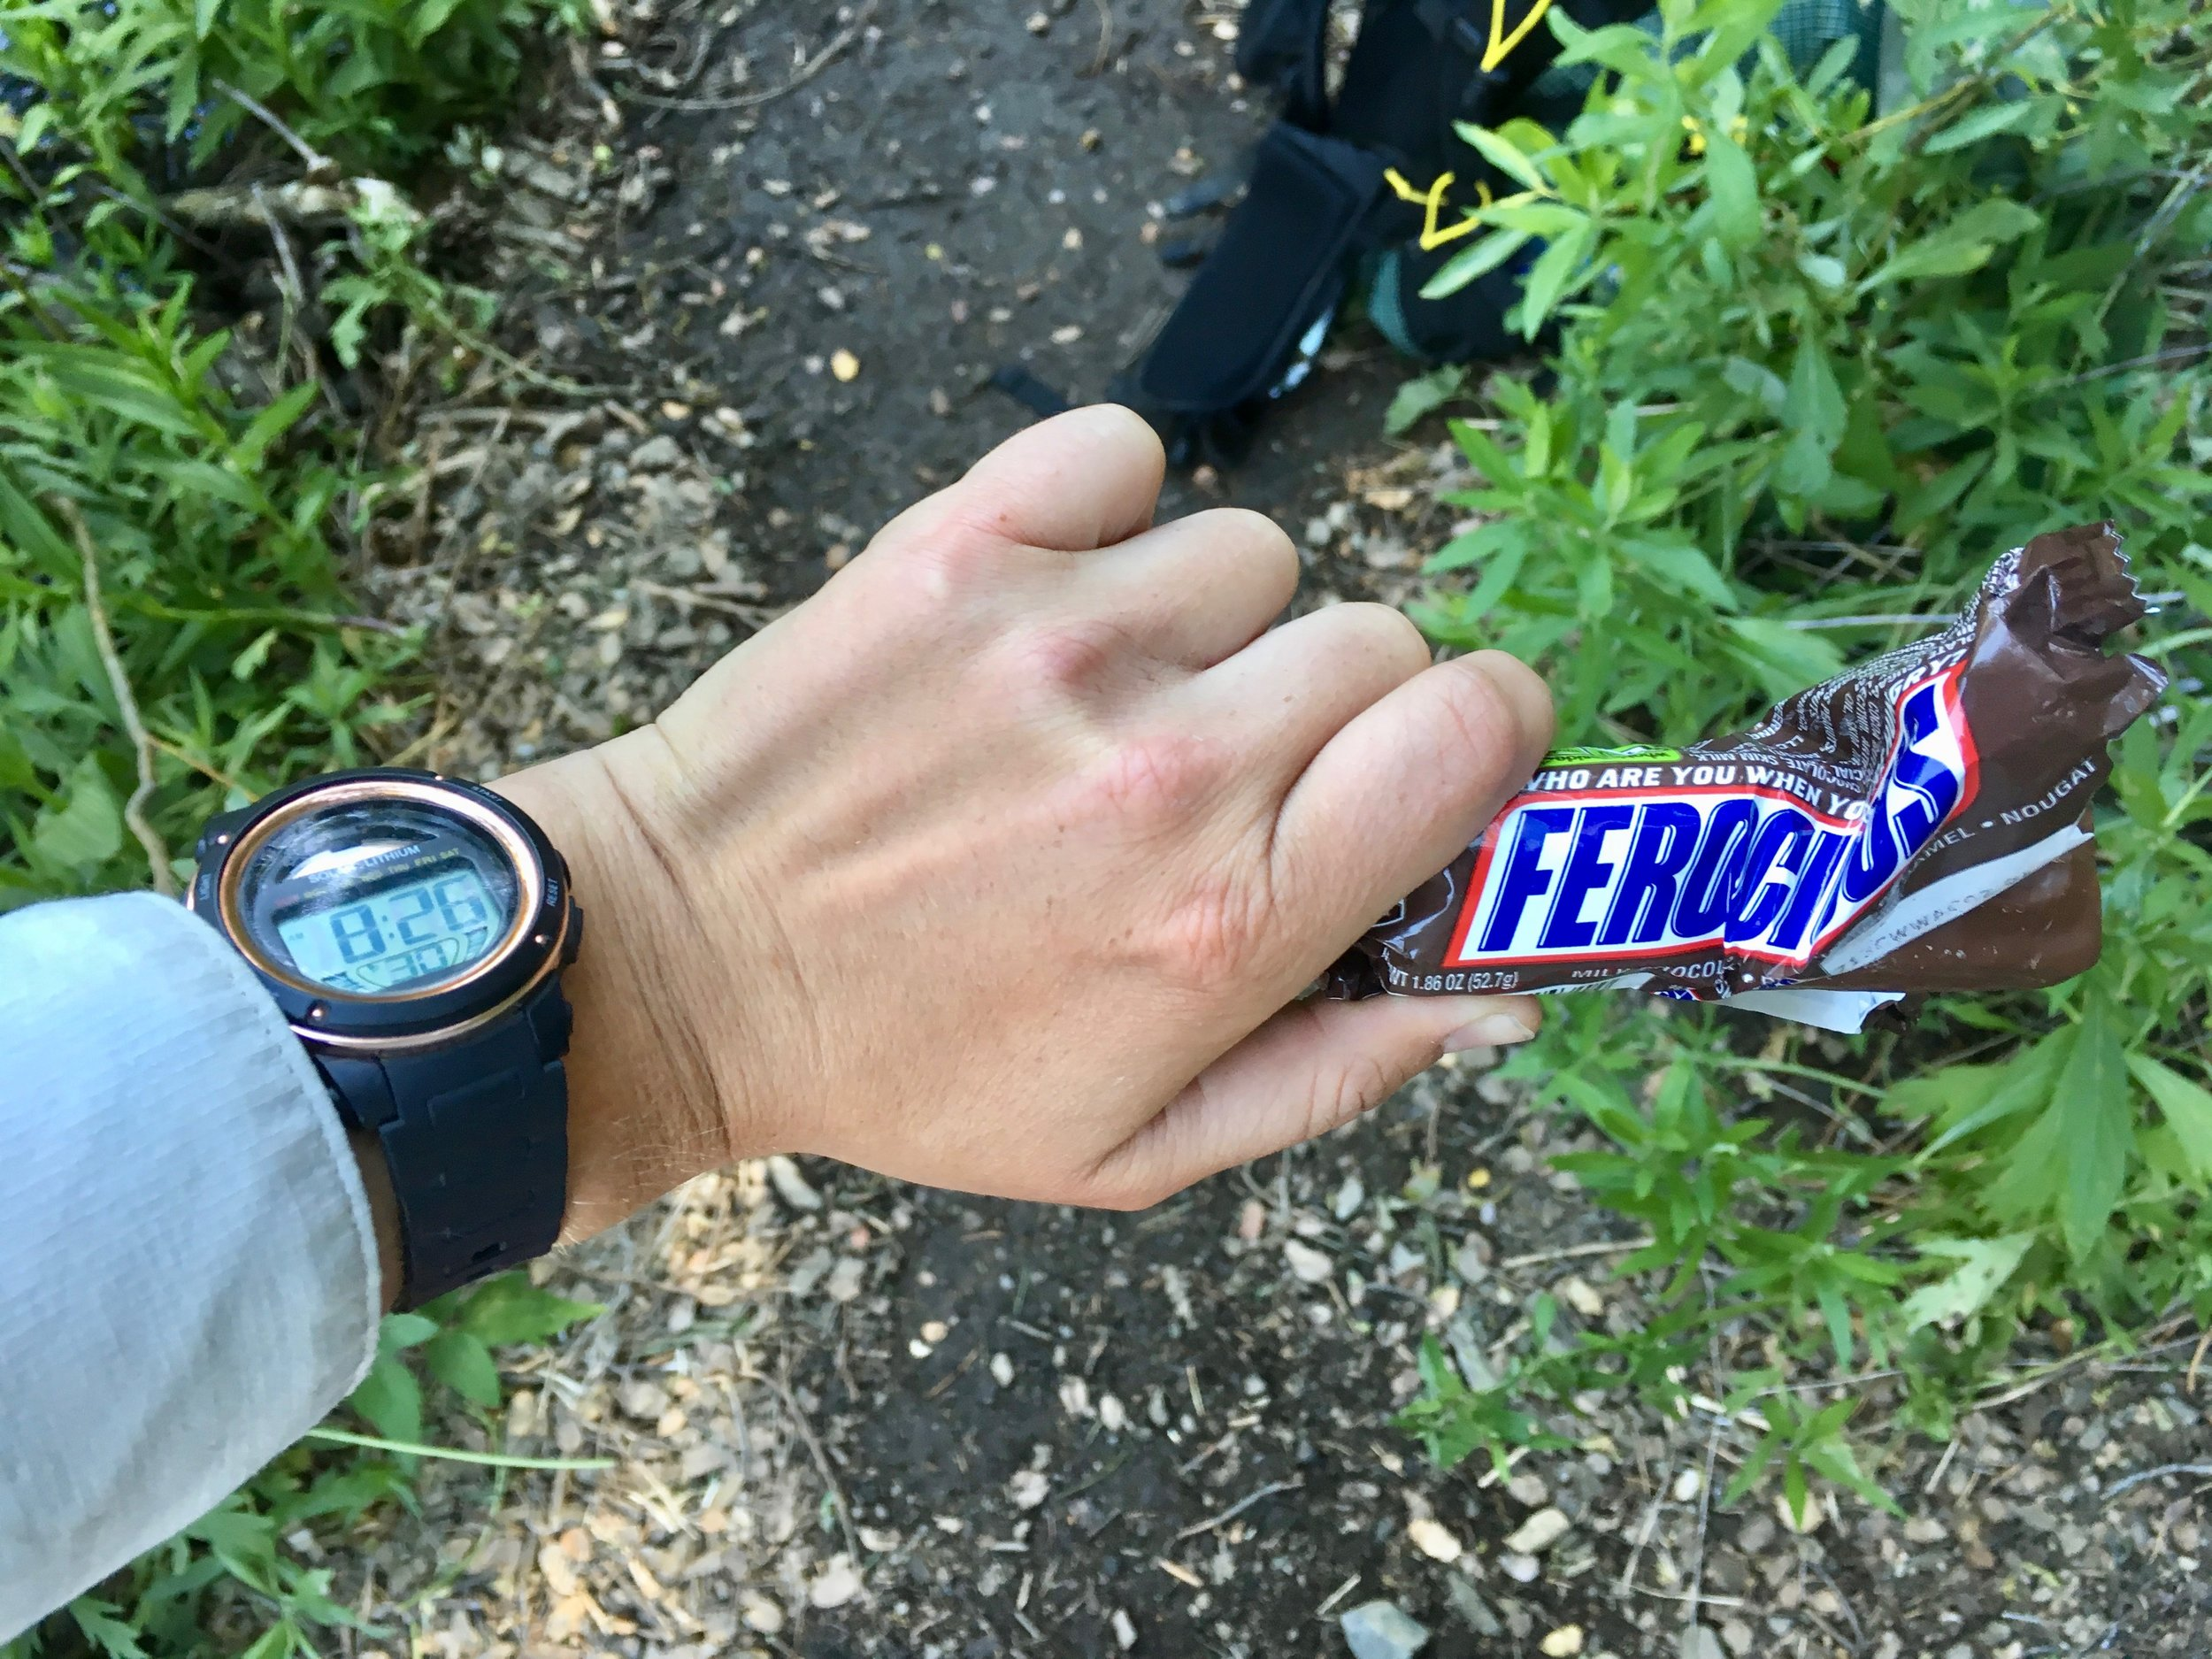 Eating a Snickers bar before 9am in Southern California